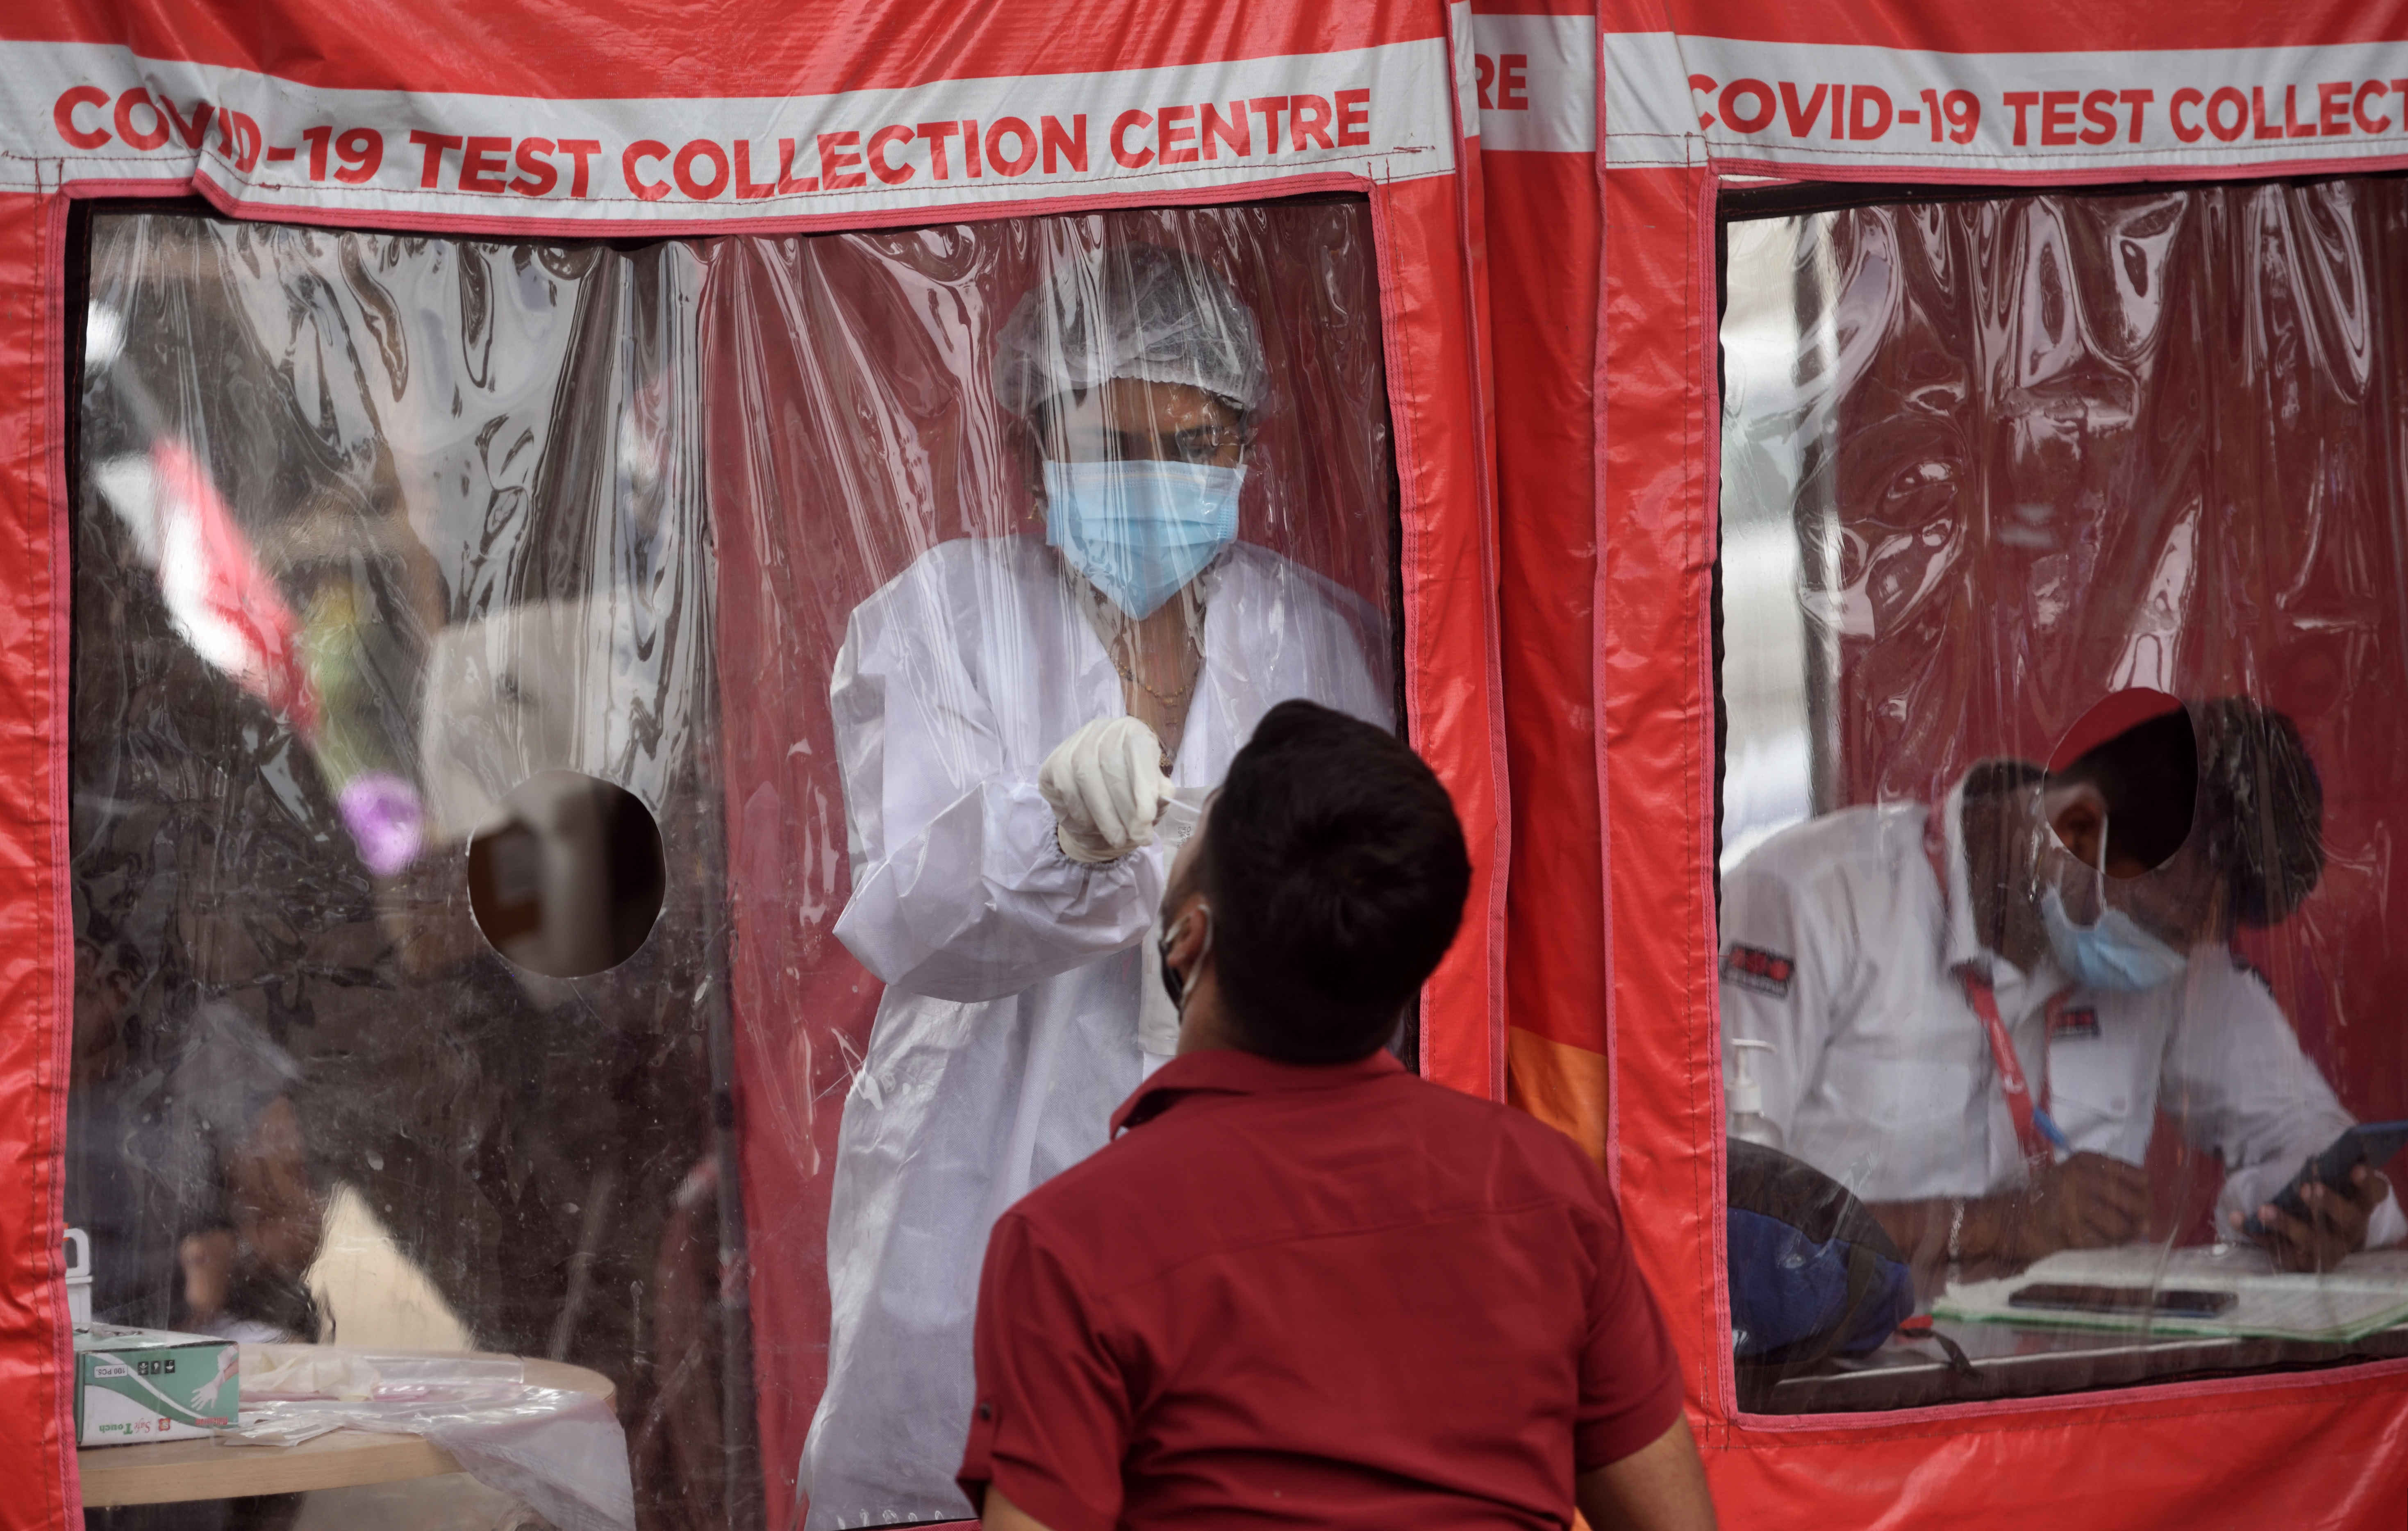 A health care worker collects a swab sample at a Covid-19 testing center in Mumbai, India, on April 22.